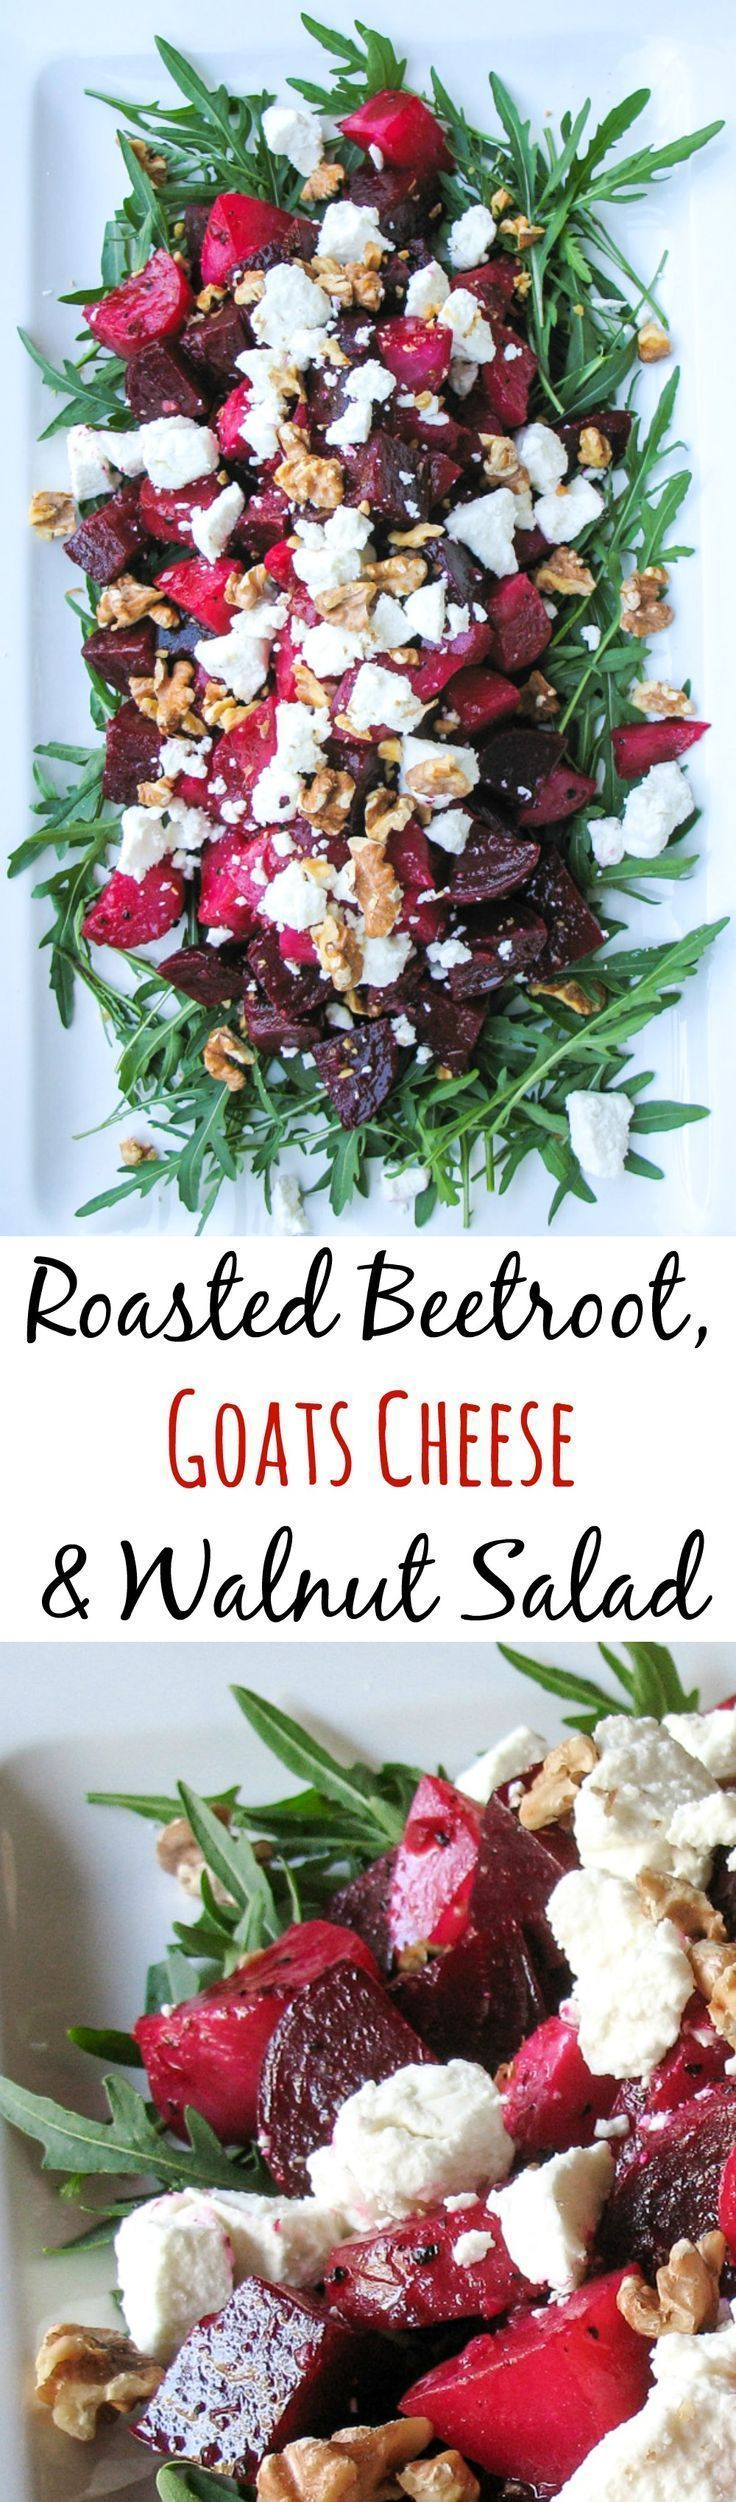 Roasted Beetroot, Goats Cheese & Walnut Salad. A Great main course salad. #beetrootsaladrecipes